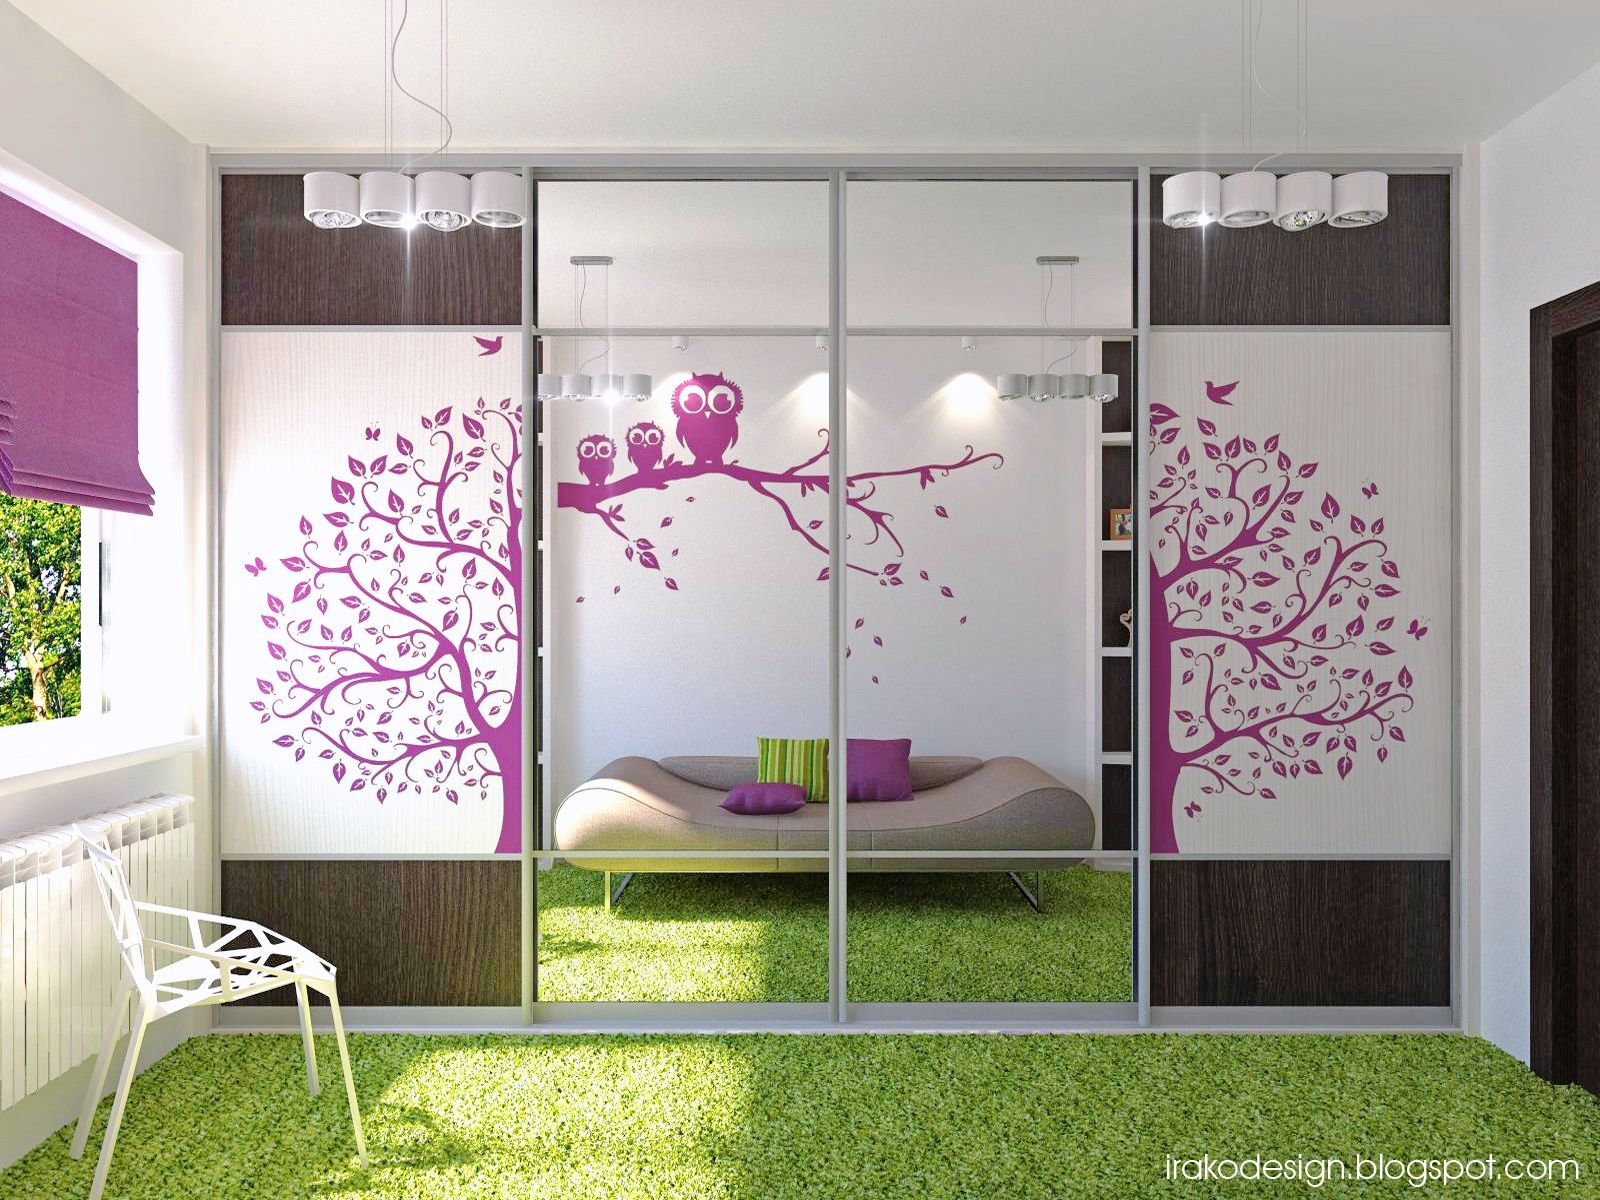 Bedrooms designs for teenagers - Bedroom Beautifully Entrancing Pinky And White Theme Teenage Girl Bedroom Design Idea From Irako Beautiful And Inspiring Ideas For Teenage Girls Room